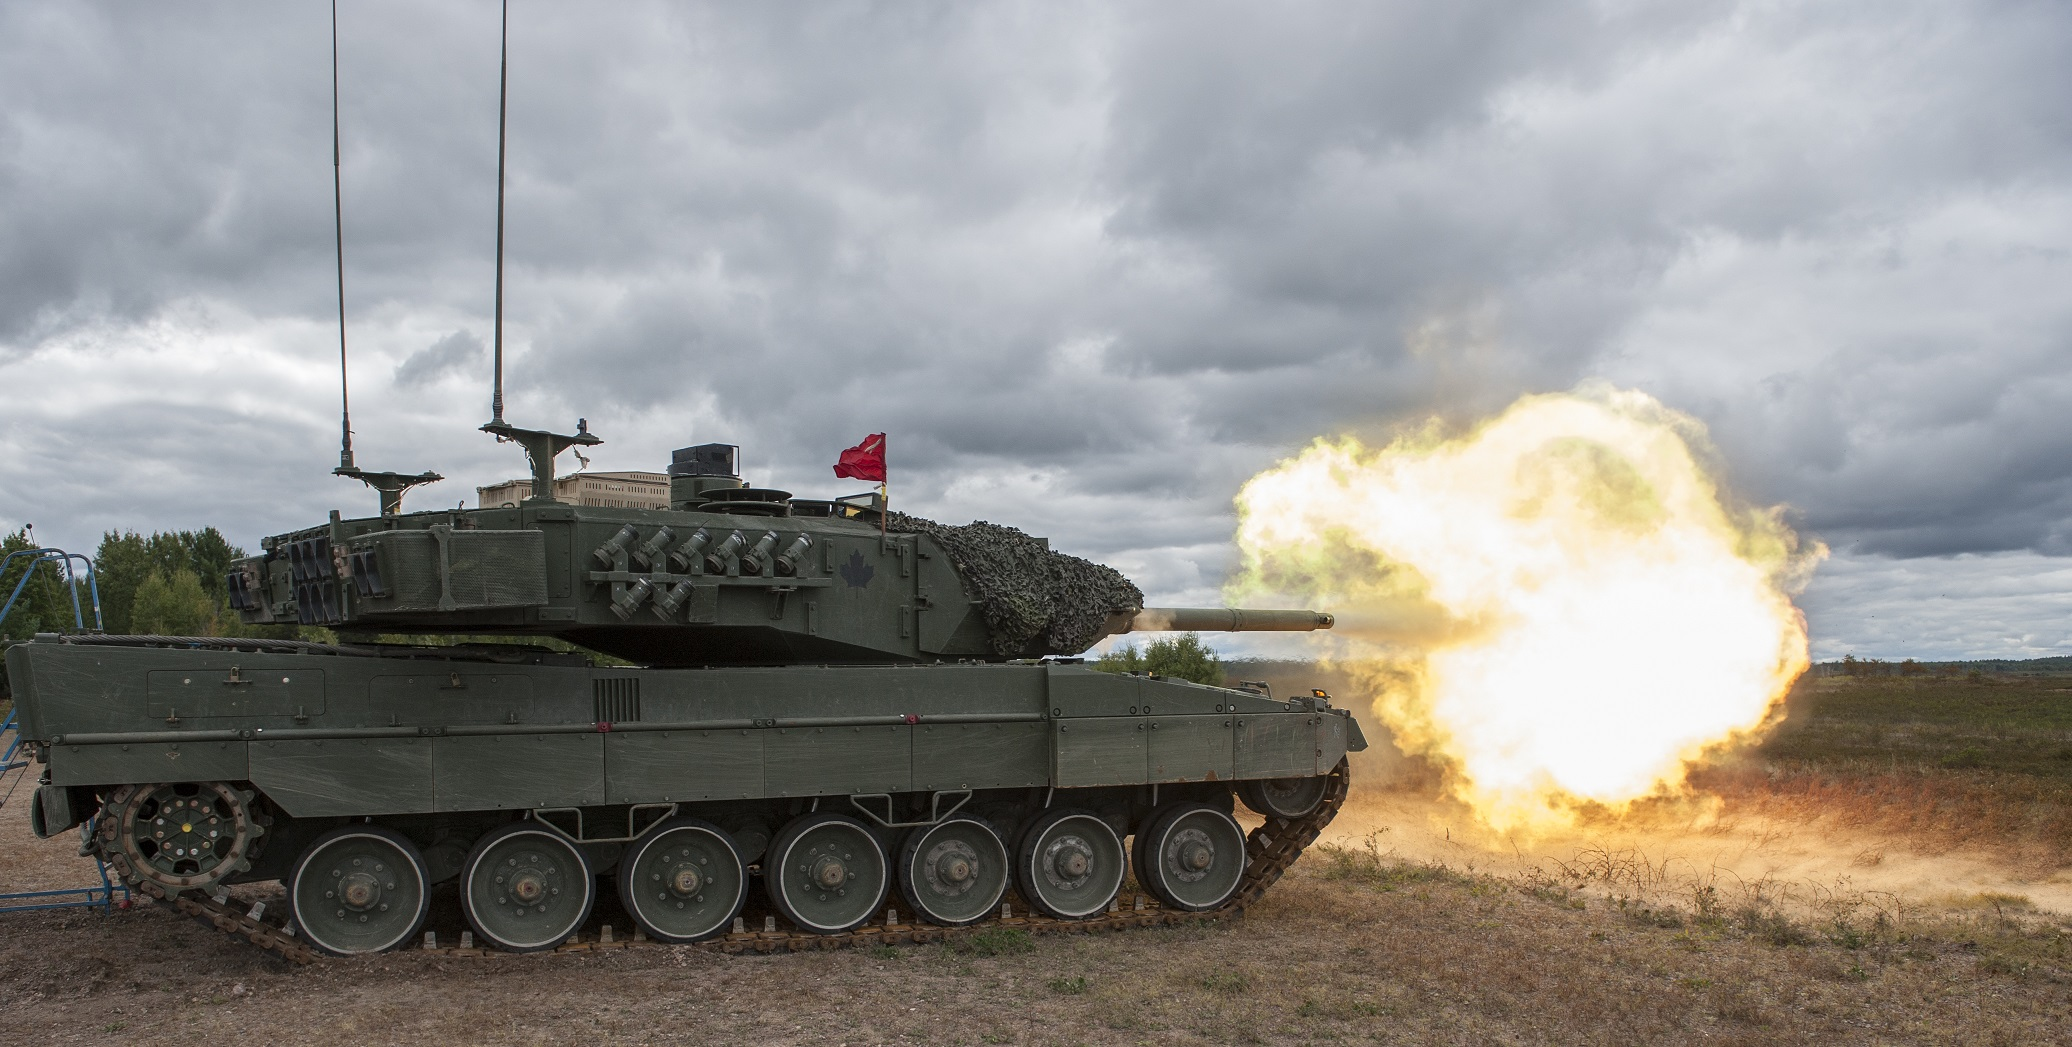 A Leopard II tank fires during exercise COLLABORATIVE SPIRIT at 4th Canadian Division Support Base Petawawa in Ontario on September 20, 2016.